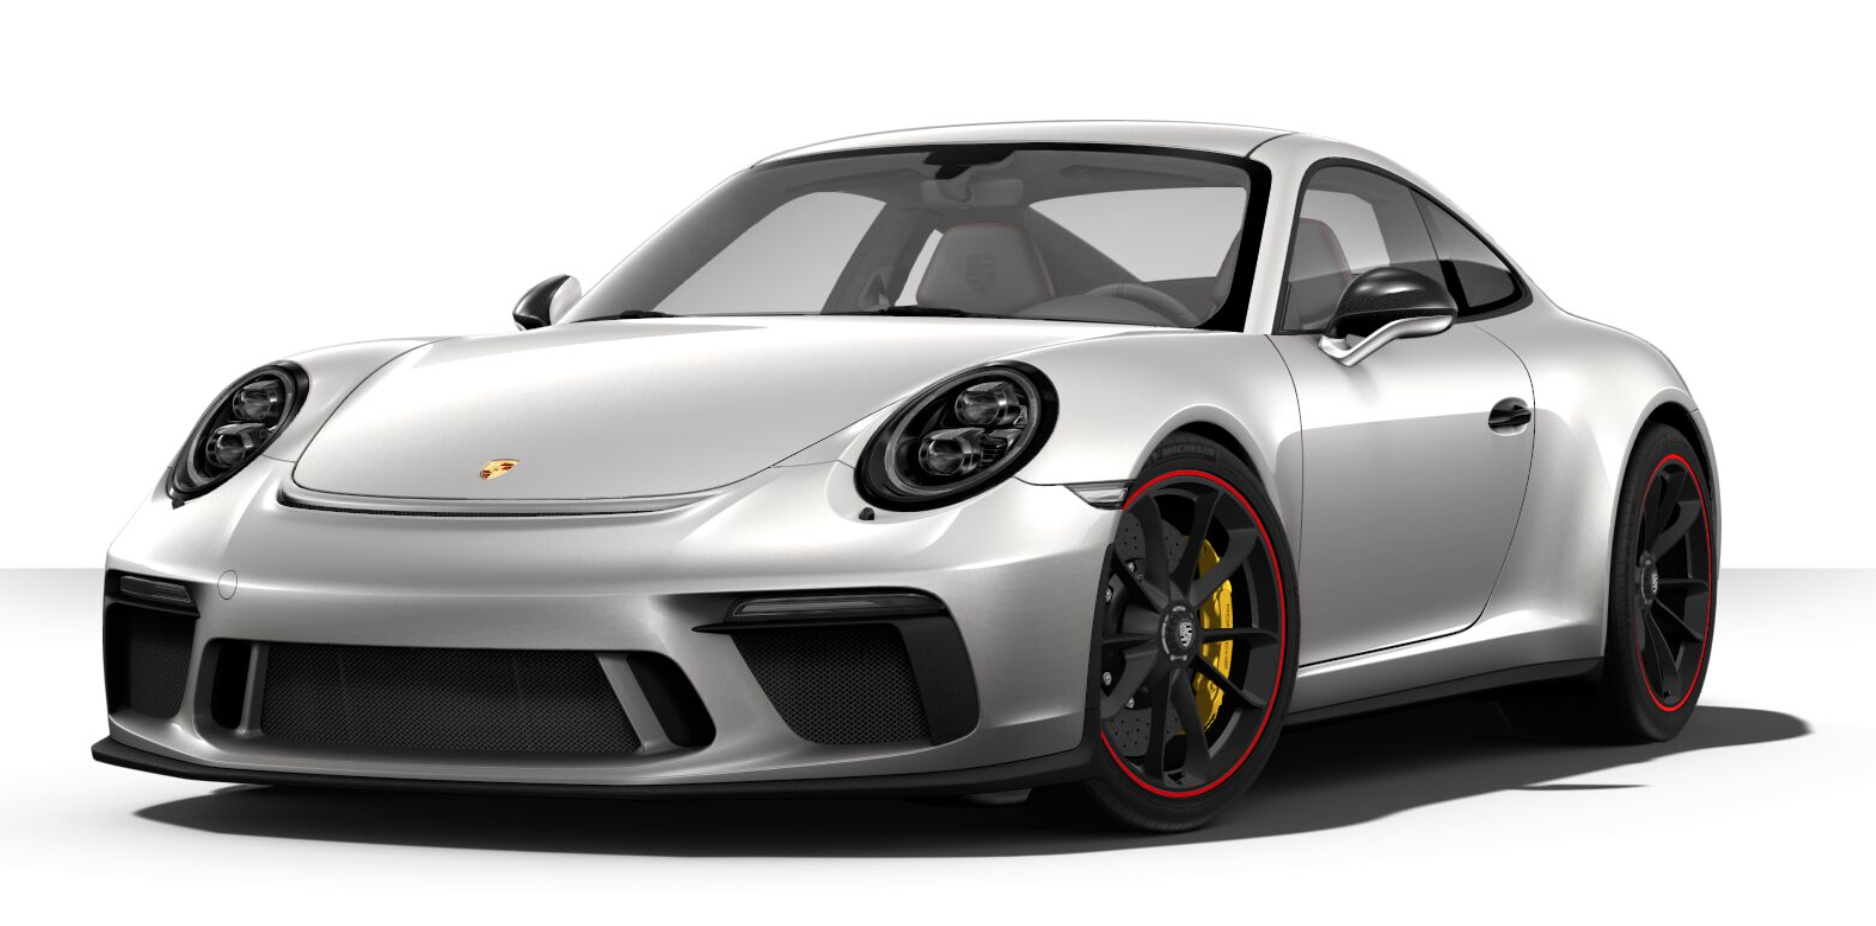 new 911 carrera t a completely pointless marketing exercise rennlist porsche discussion forums. Black Bedroom Furniture Sets. Home Design Ideas